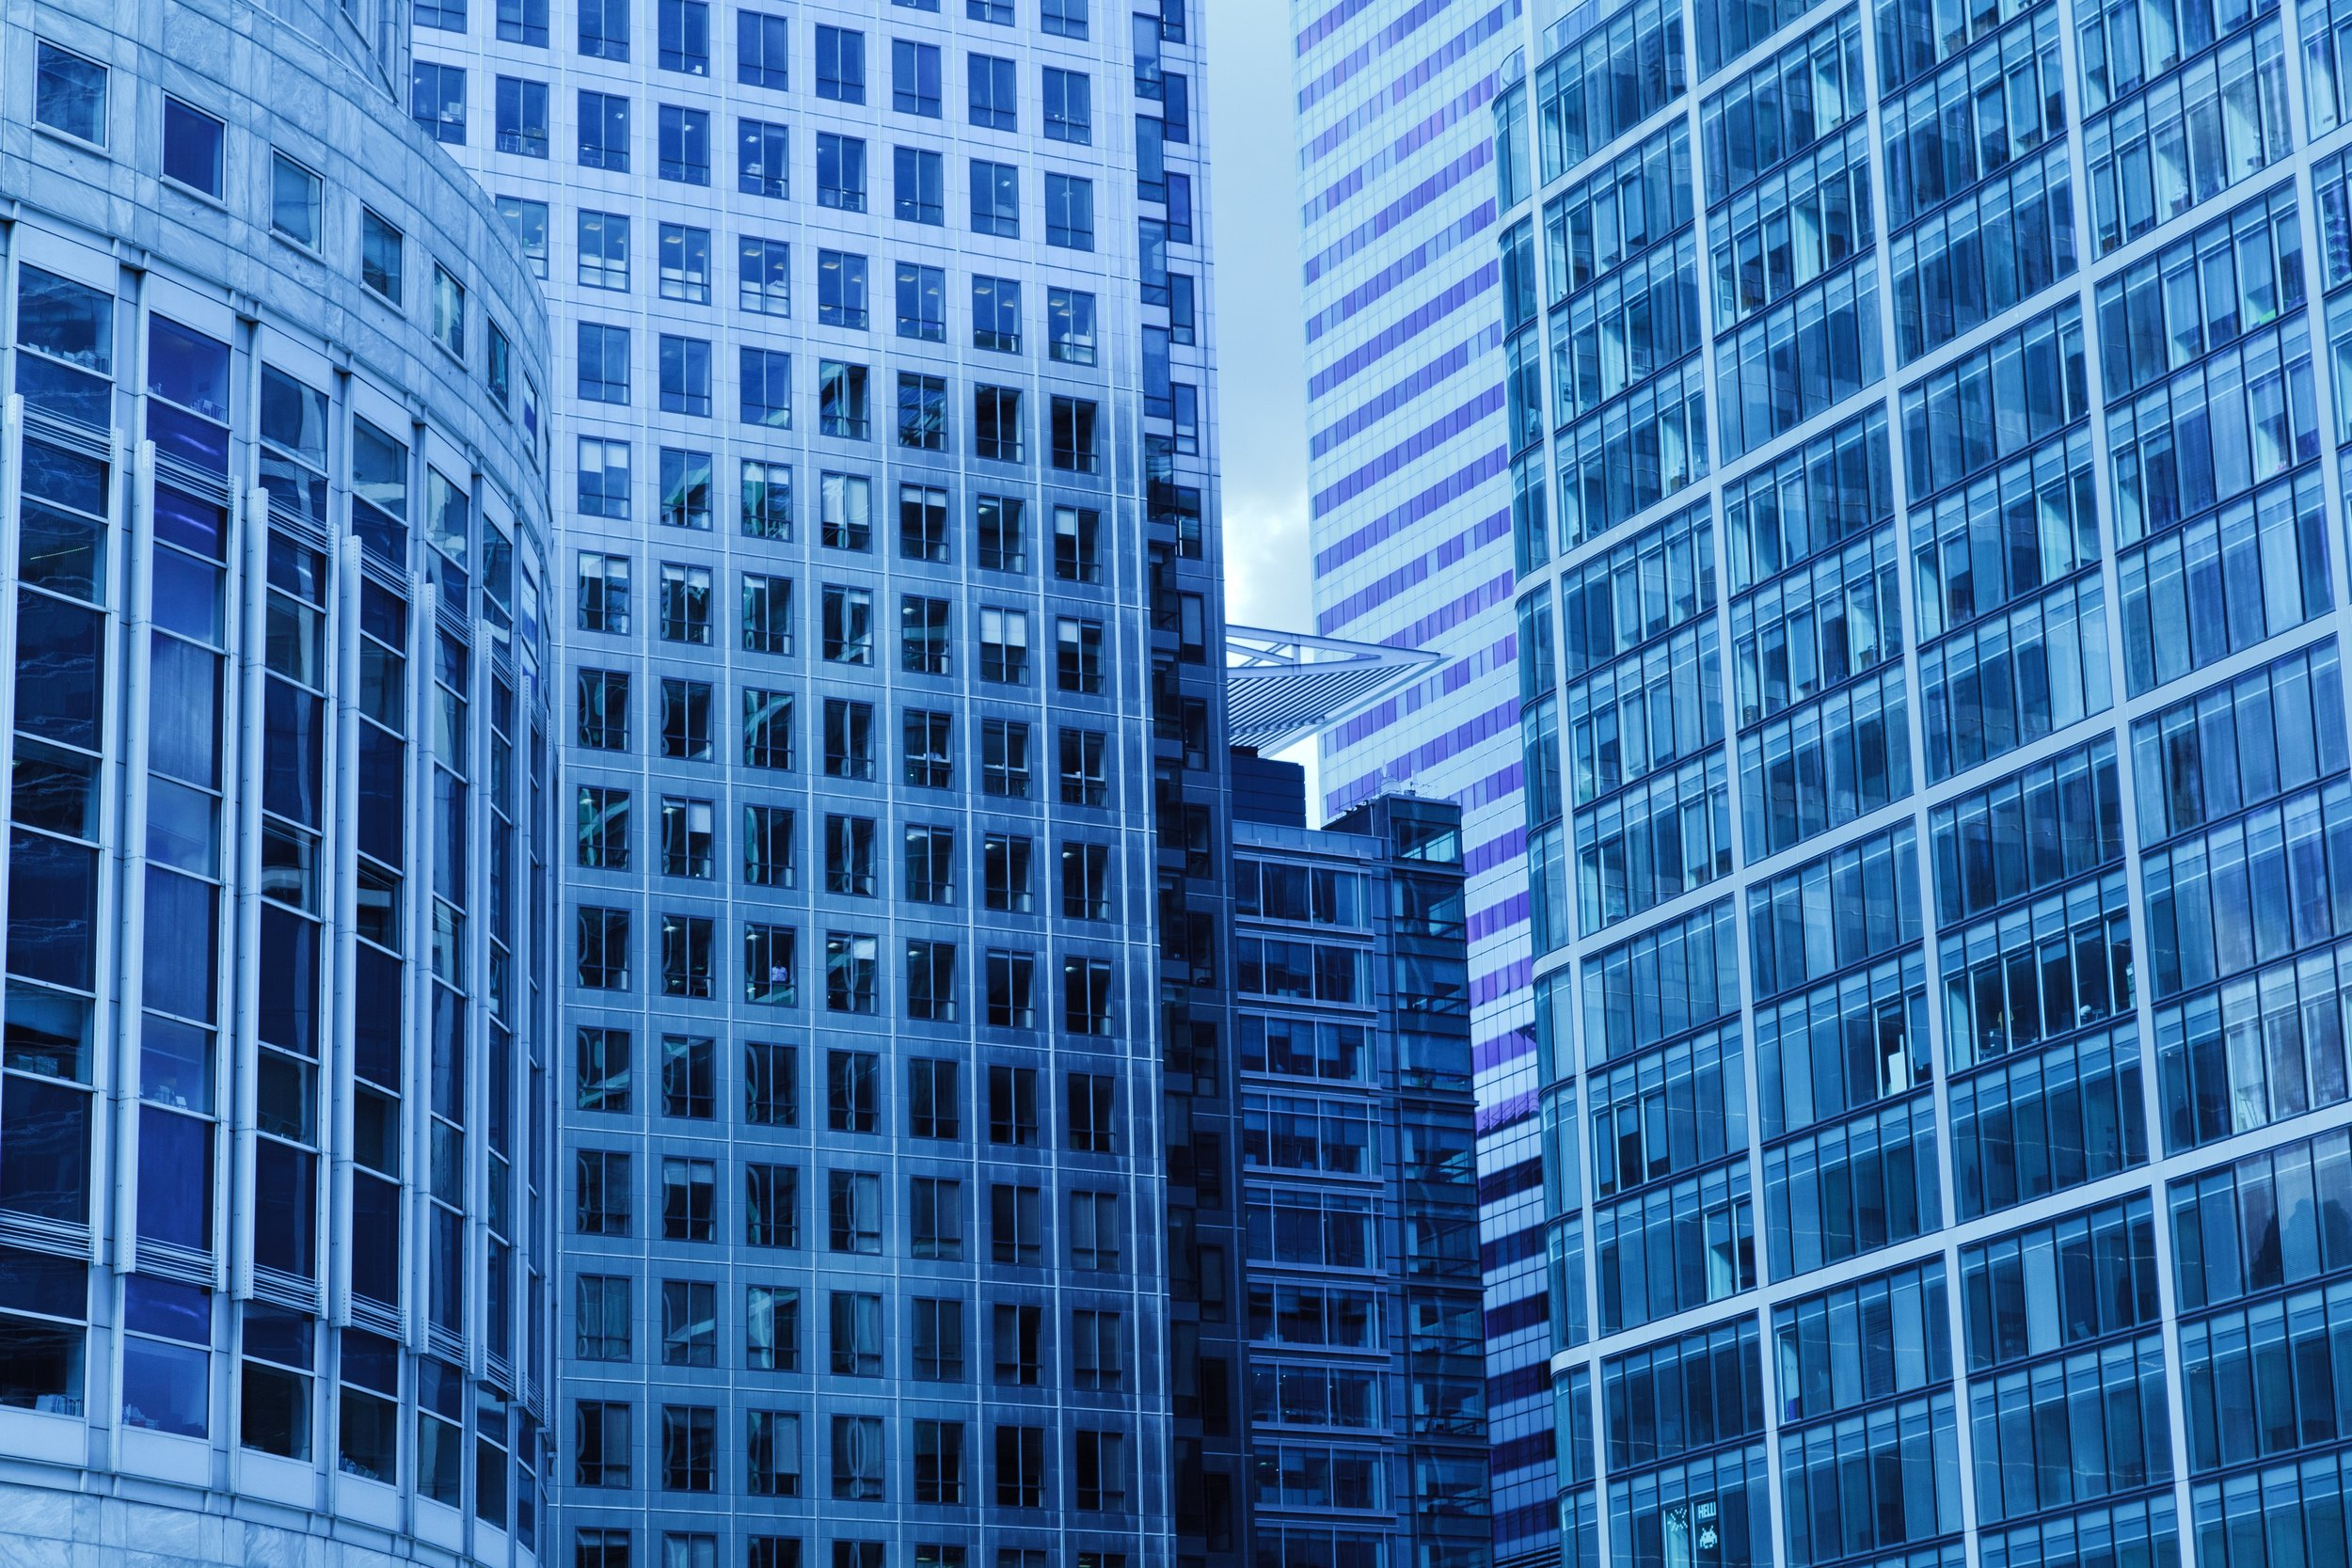 architecture-blue-building-business-41170.jpeg